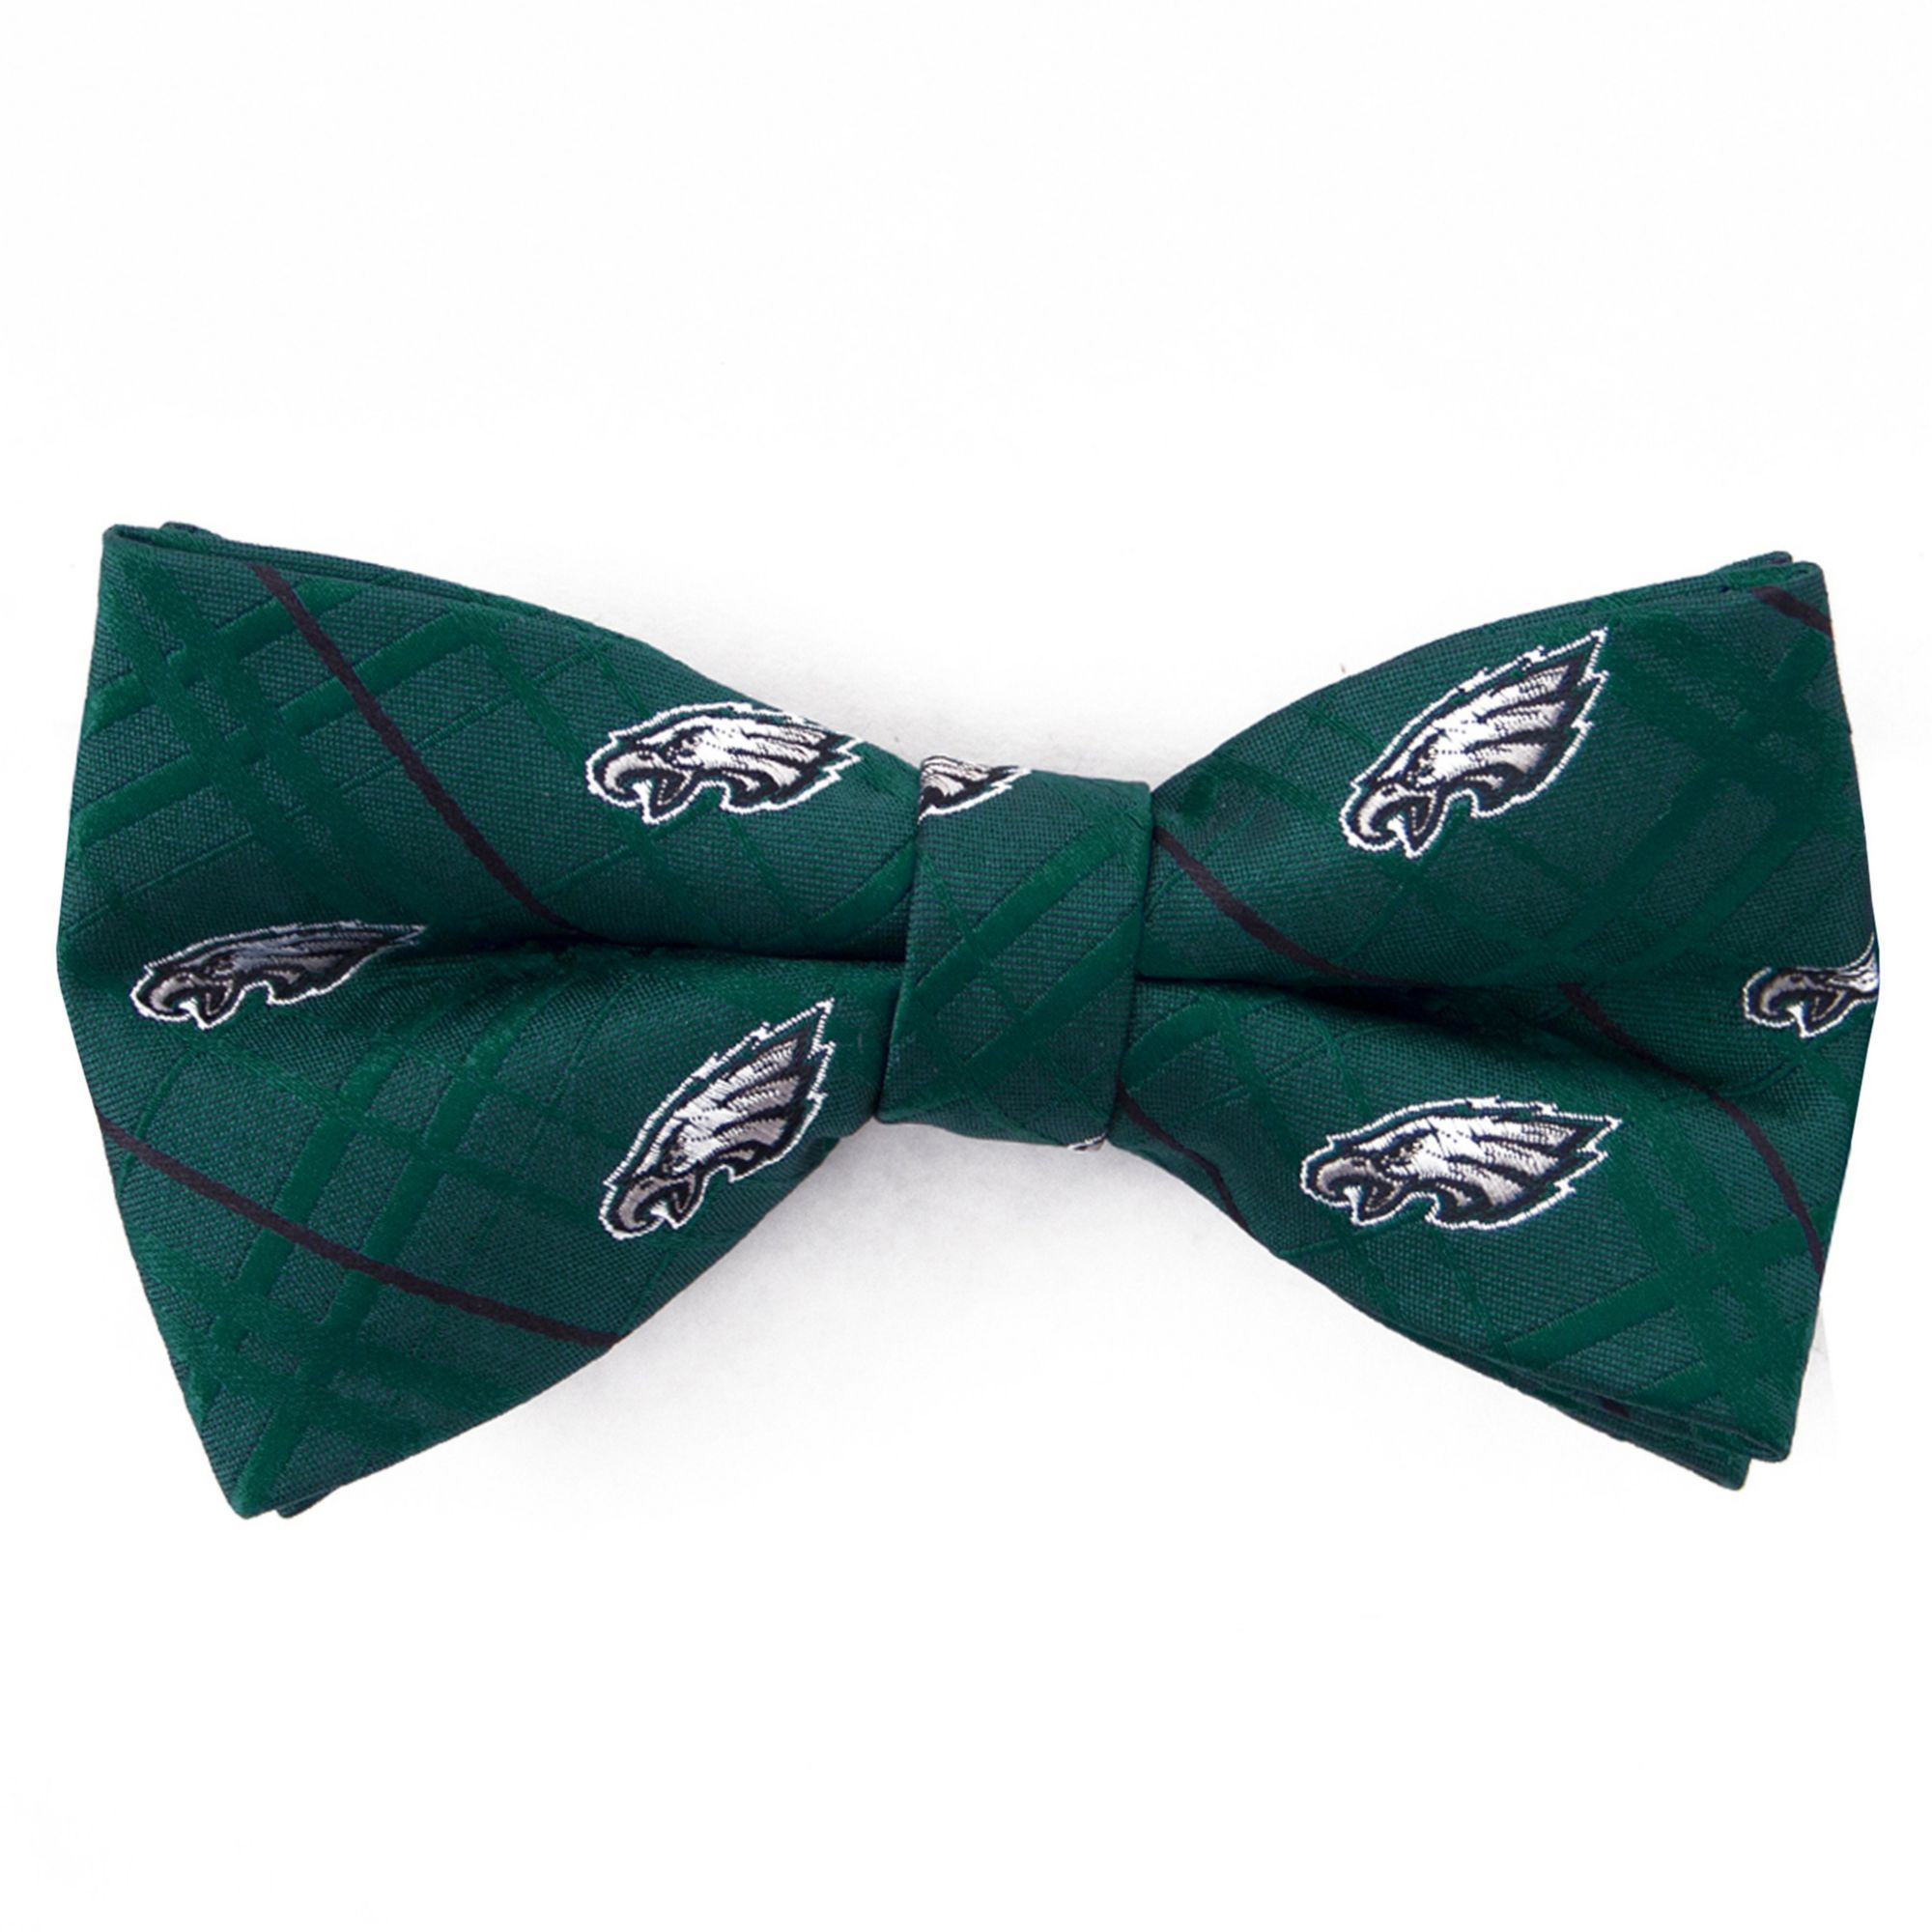 766c514be9f8 Wings Philadelphia Oxford Bow Tie | Products in 2018 | Pinterest ...